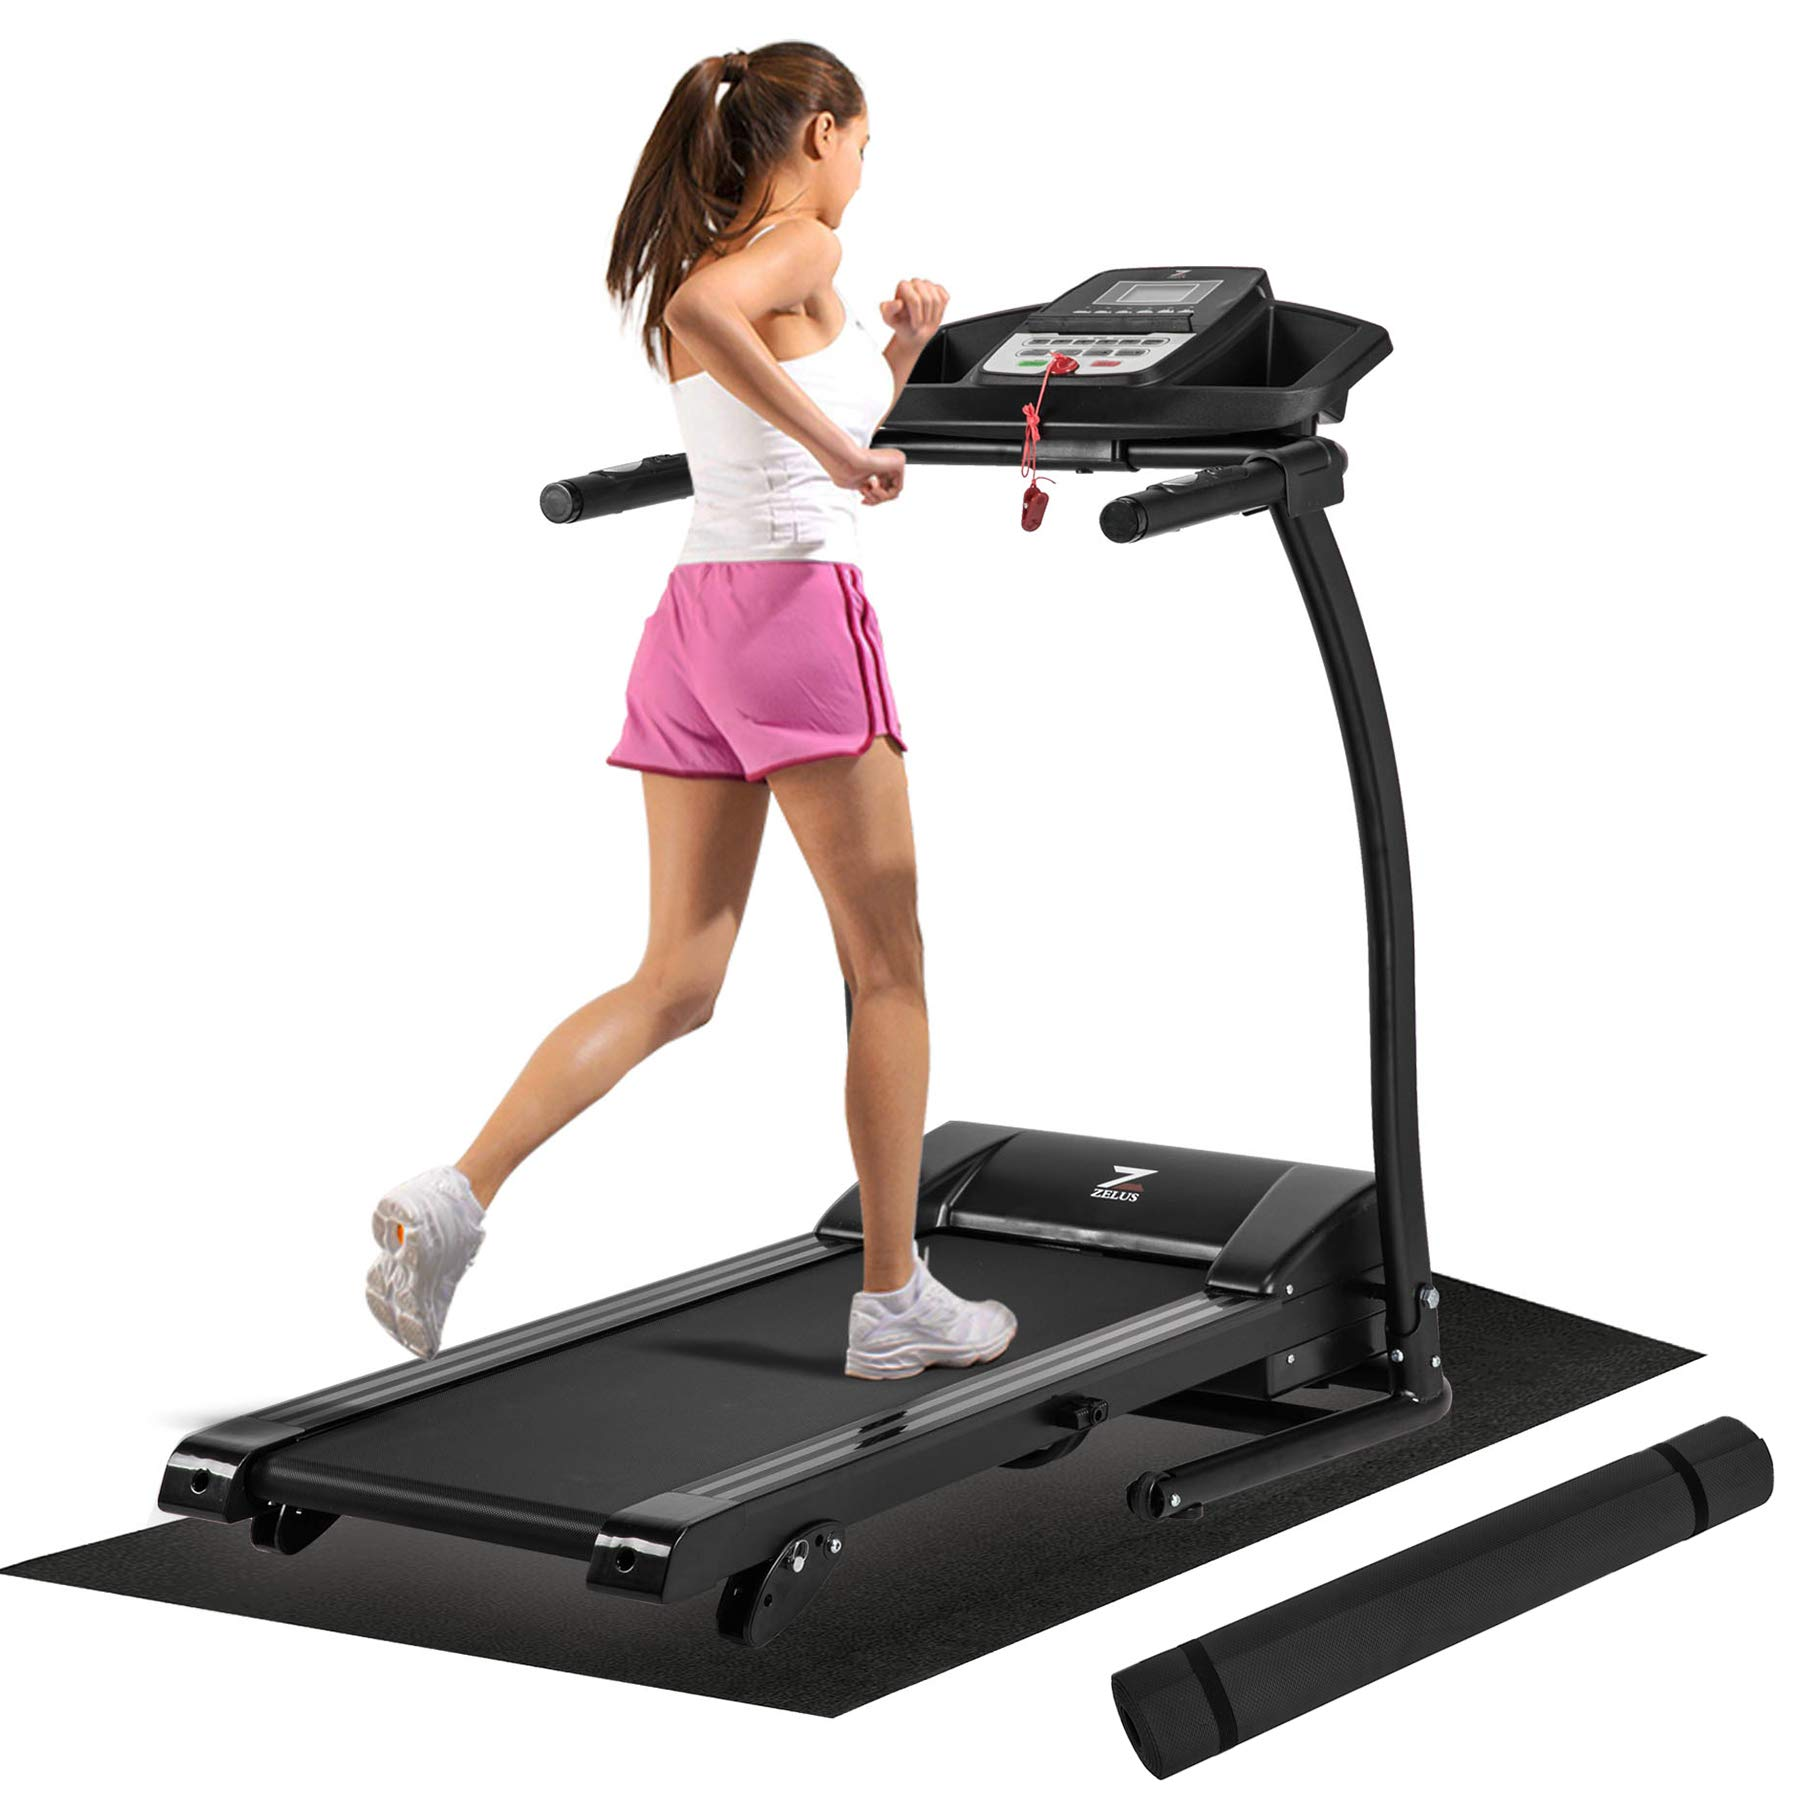 ZELUS Folding Treadmill Electric Motorized Running Machine with Downloadable Sports App Control Walking and Running OR Treadmill Mat, Cup Holder, MP3 Player & Wheels Easy (Upgraded Treadmill with Mat)